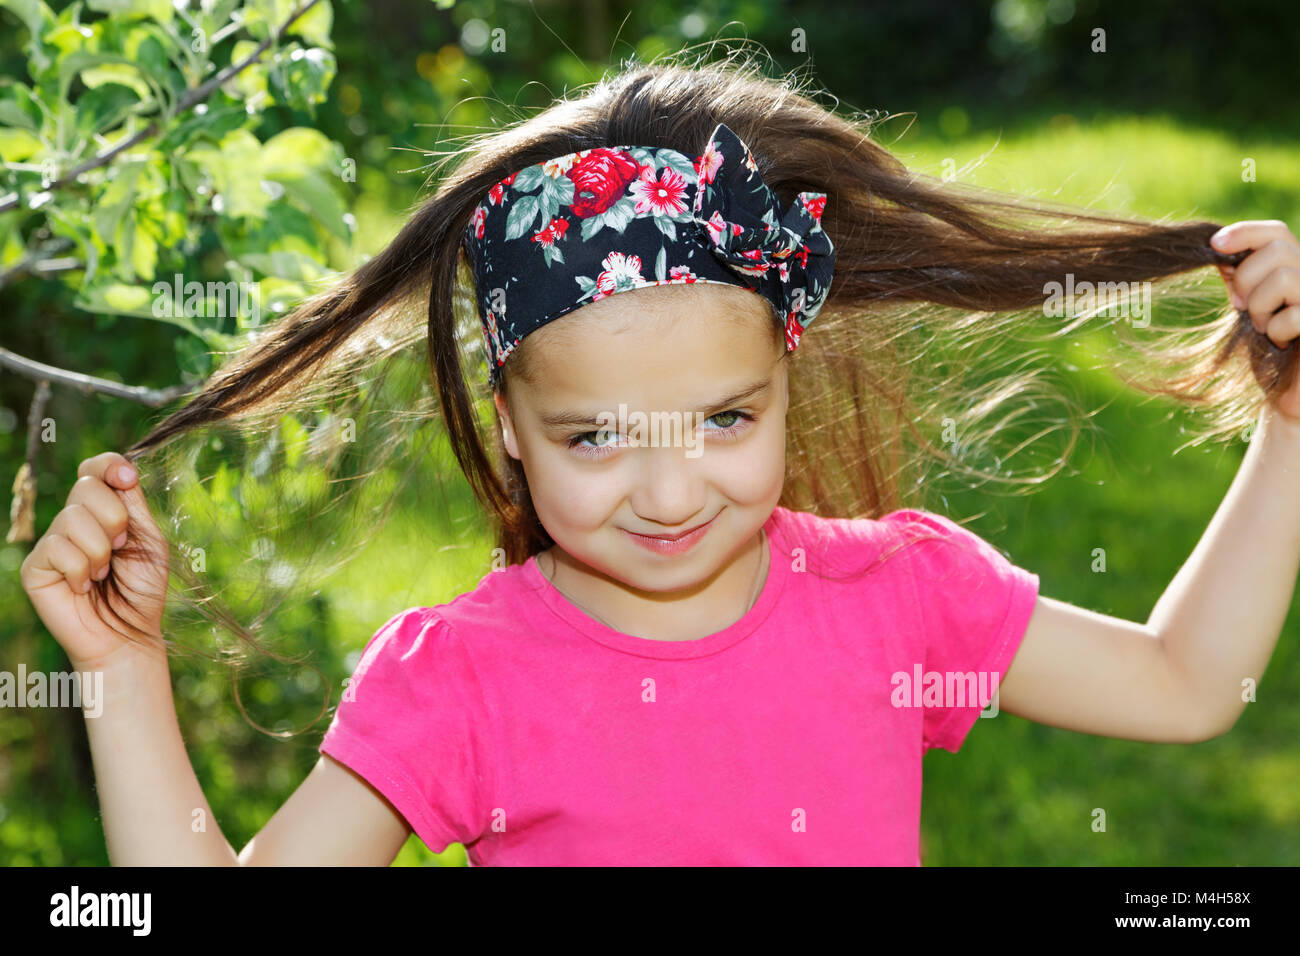 Little girl with bandanas on her head in the park - Stock Image